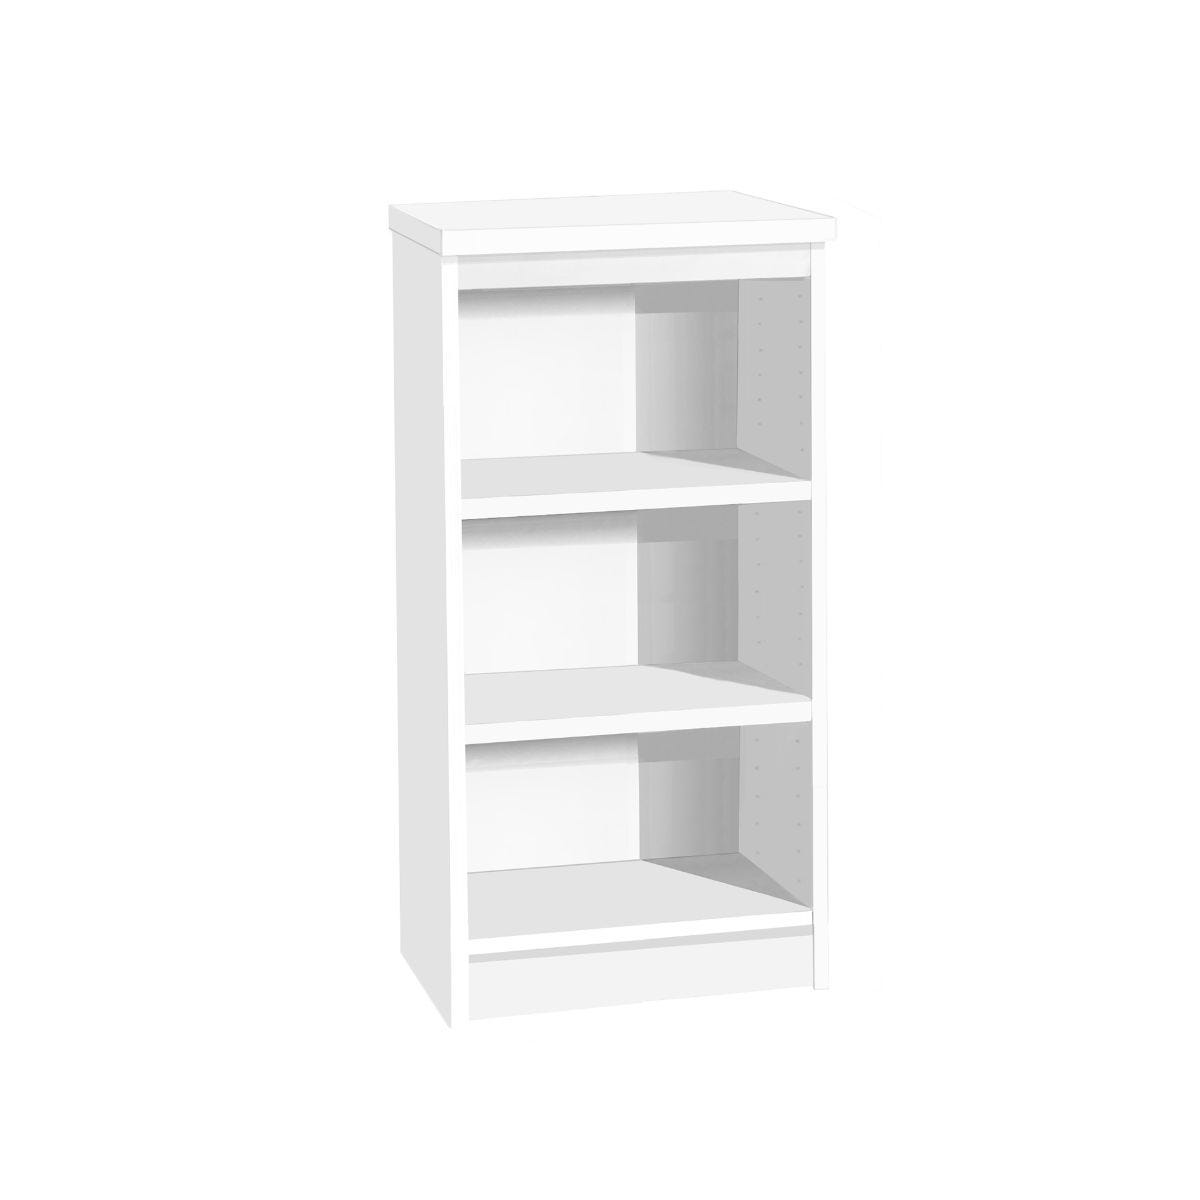 R White Mid Height Bookcase, White